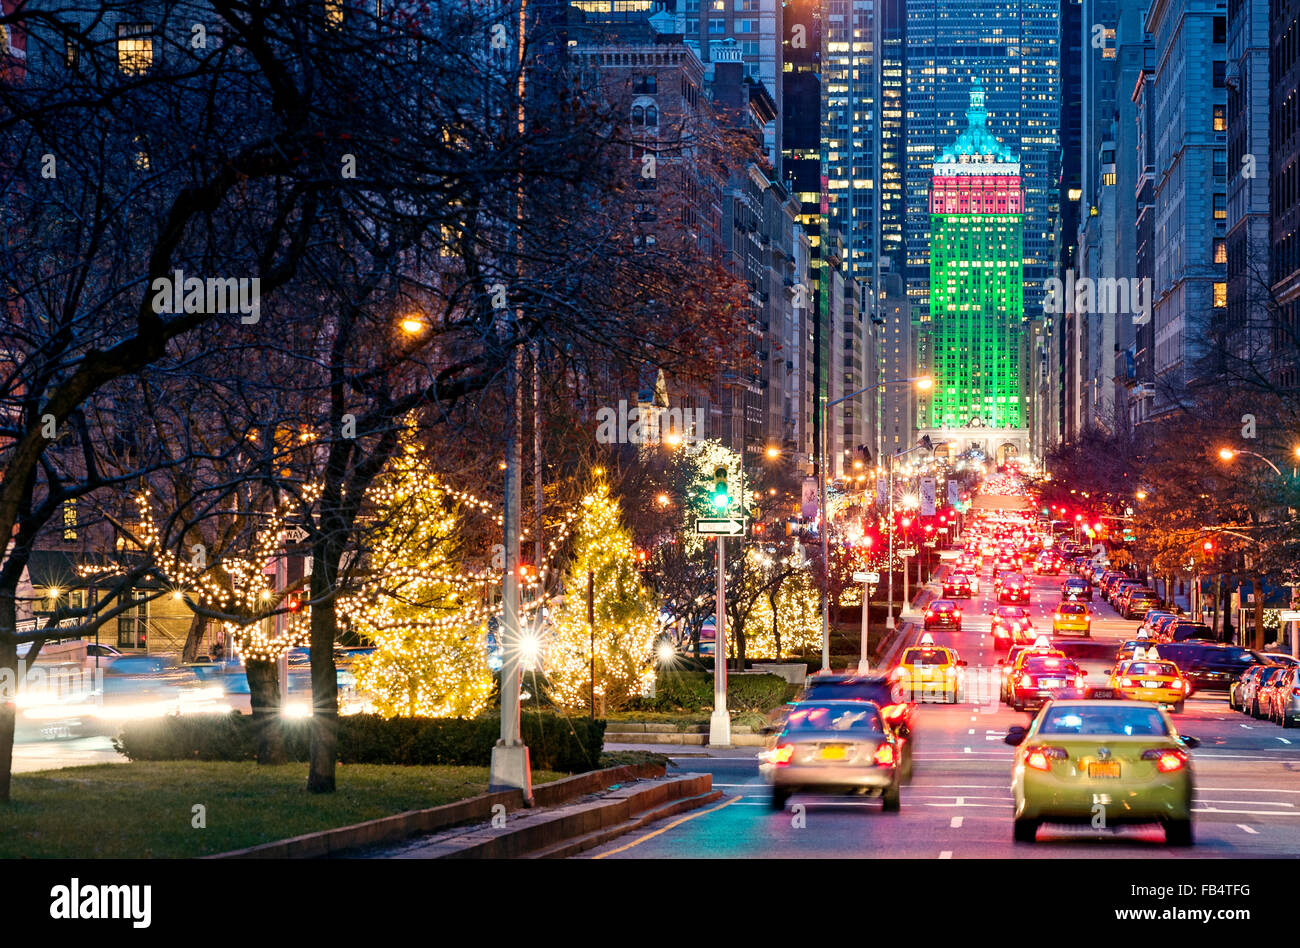 #A87223 New York Streets Park Avenue New York City Christmas  5549 decorations noel new york 1300x948 px @ aertt.com